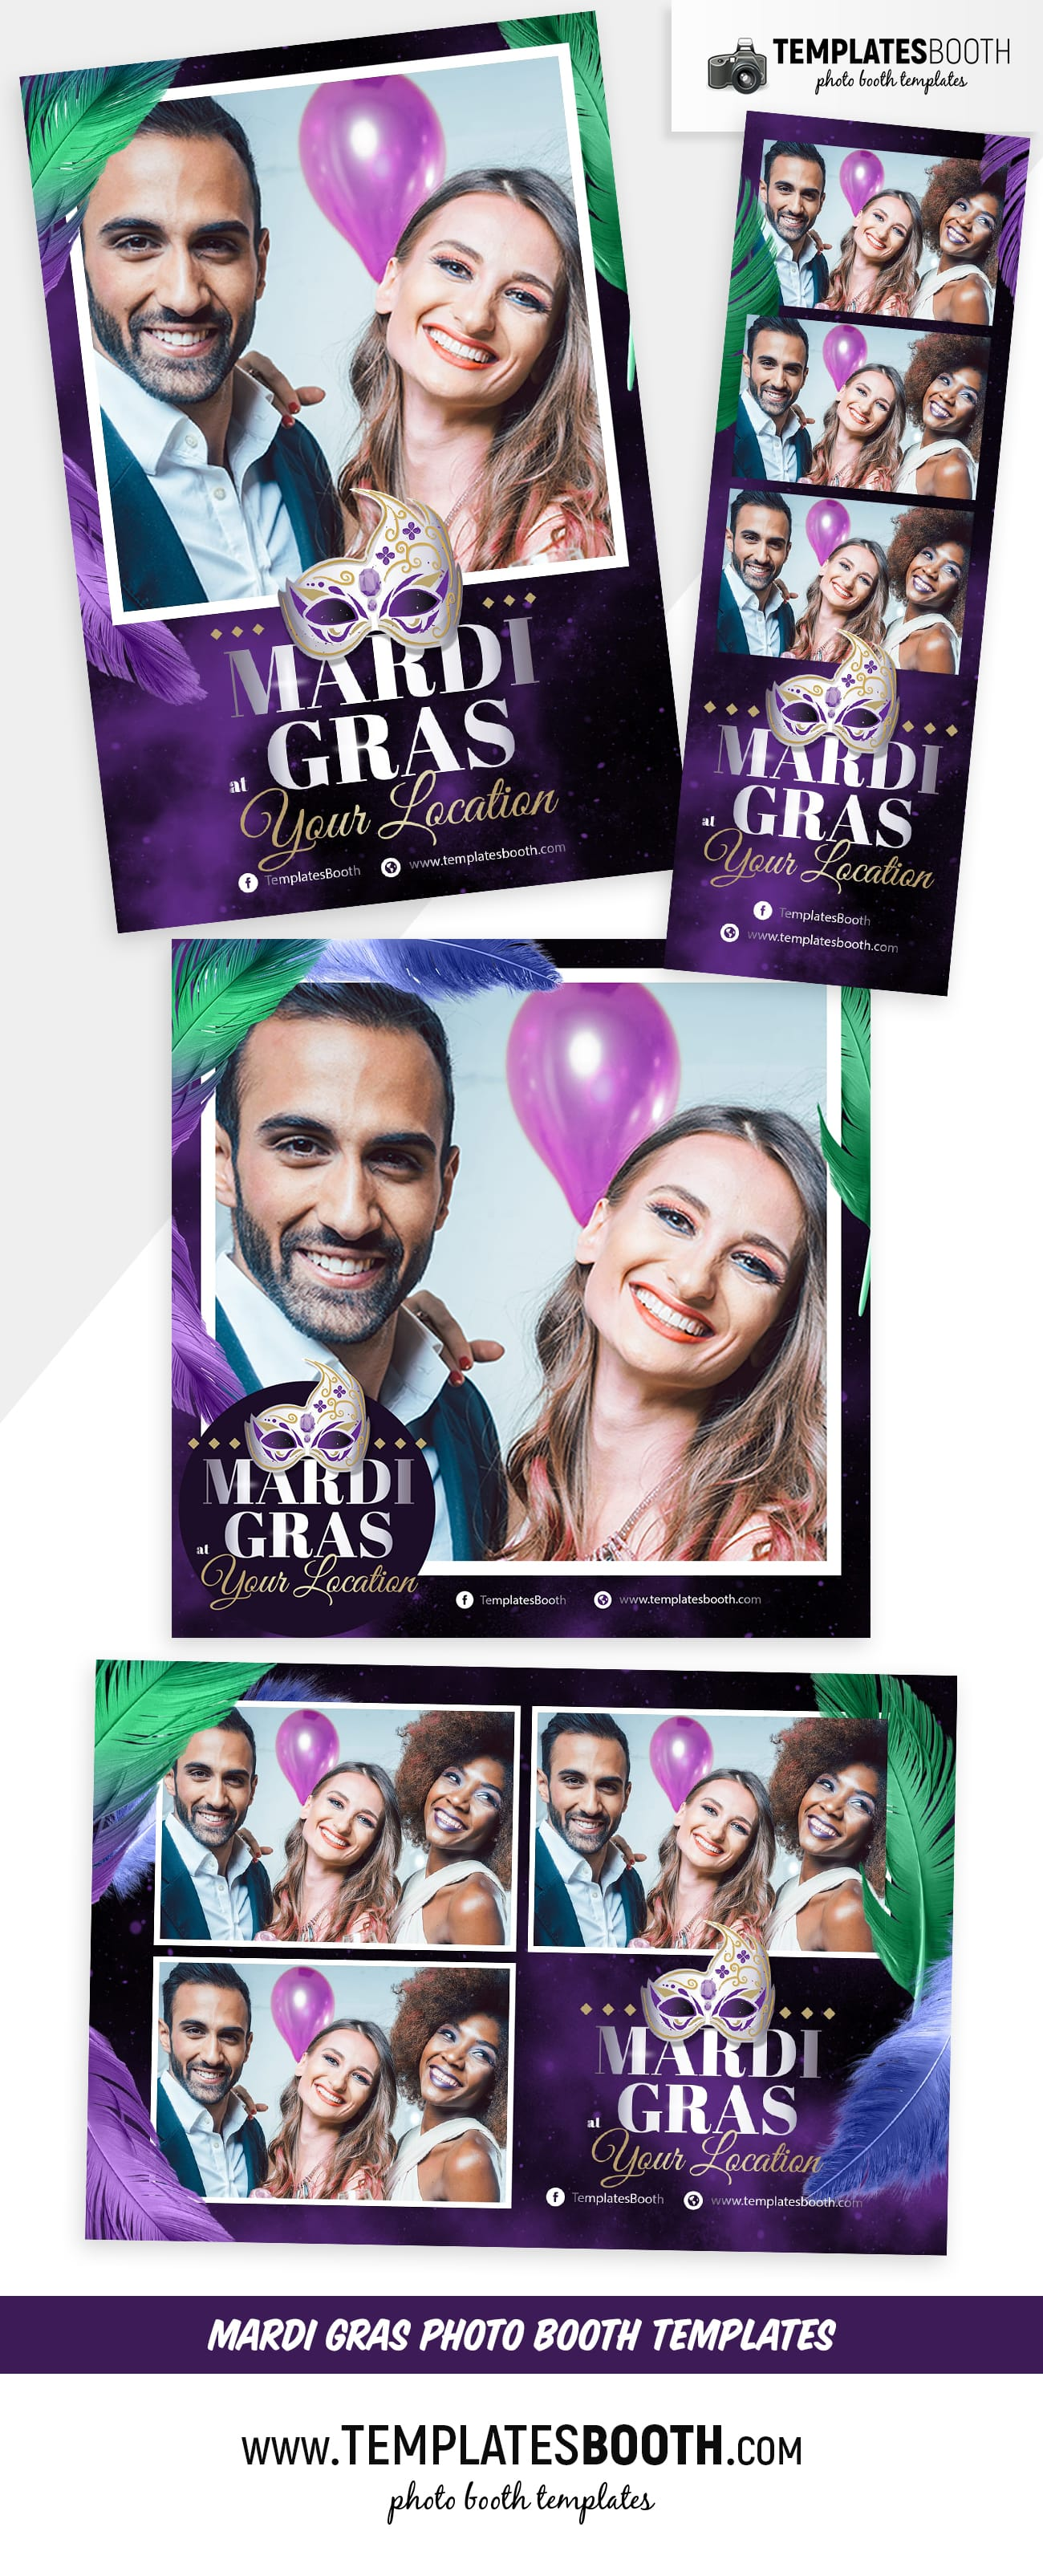 Mardi Gras Photo Booth Template (full preview)